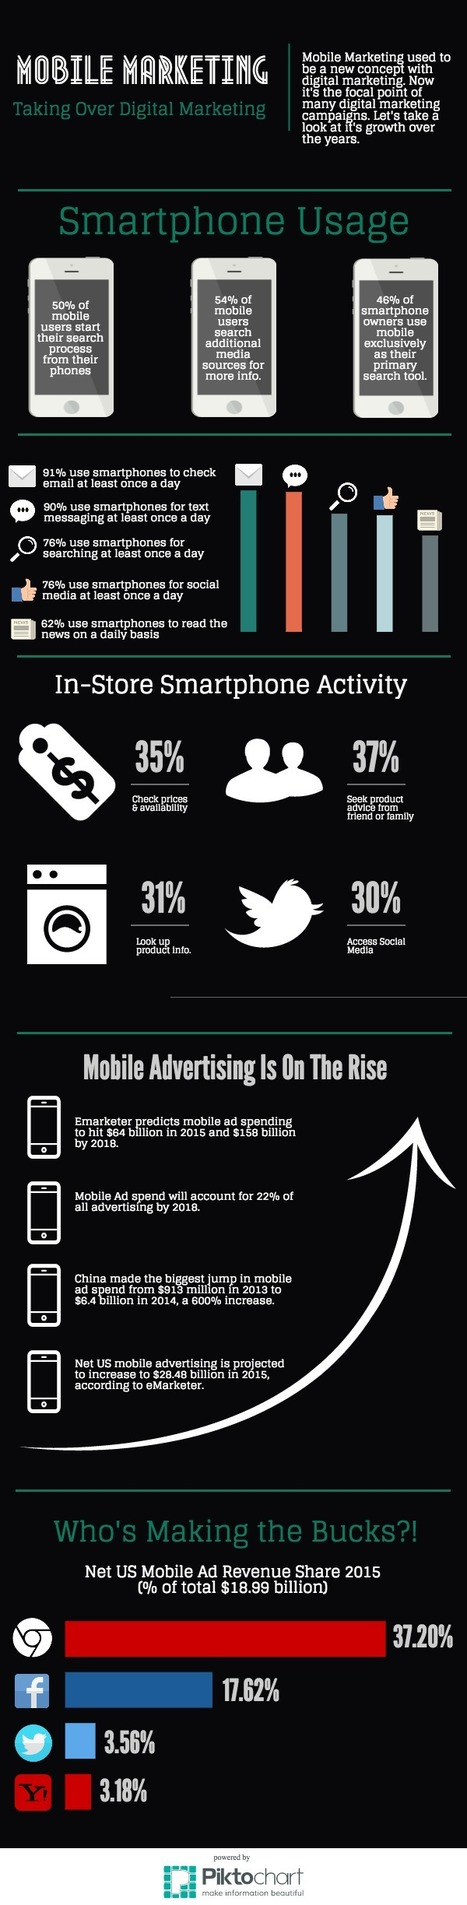 Infographic: Mobile Marketing is Taking Over Digital Marketing | Mobile Marketing Watch | Mobile Customer Experience Management | Scoop.it